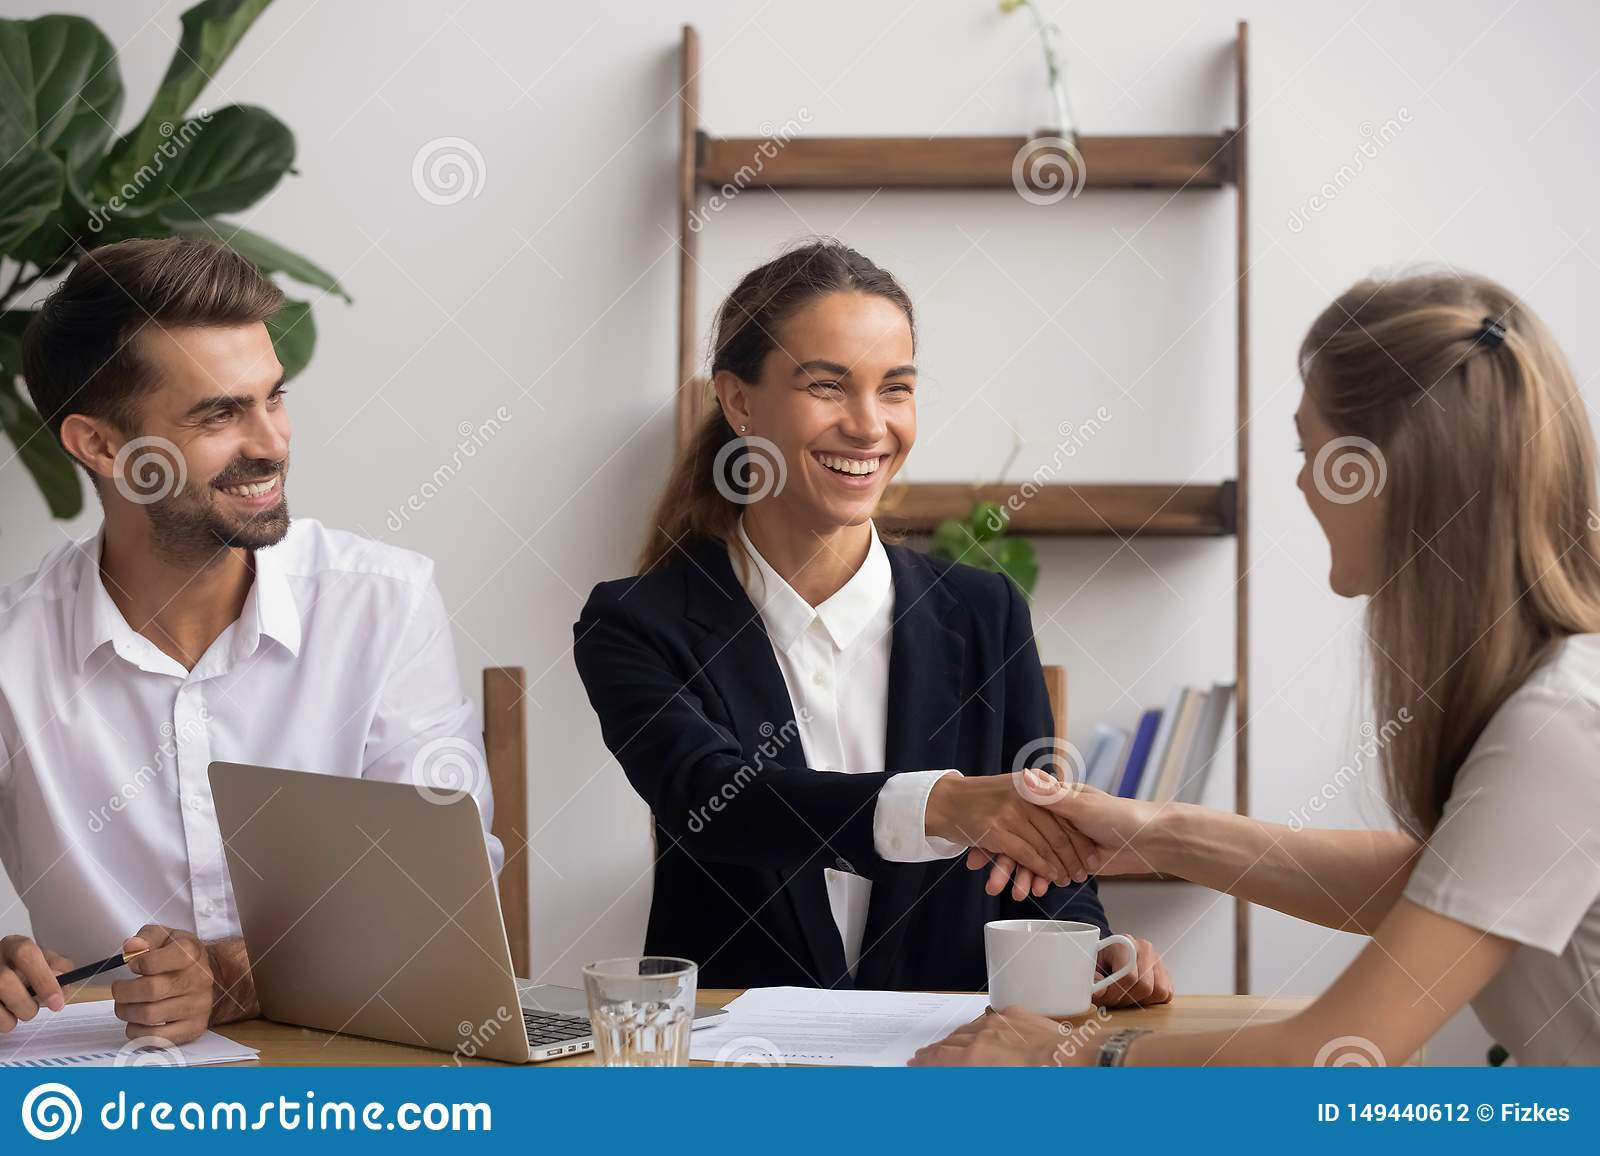 Smiling HR agent shaking hand congratulating candidate with successful interview